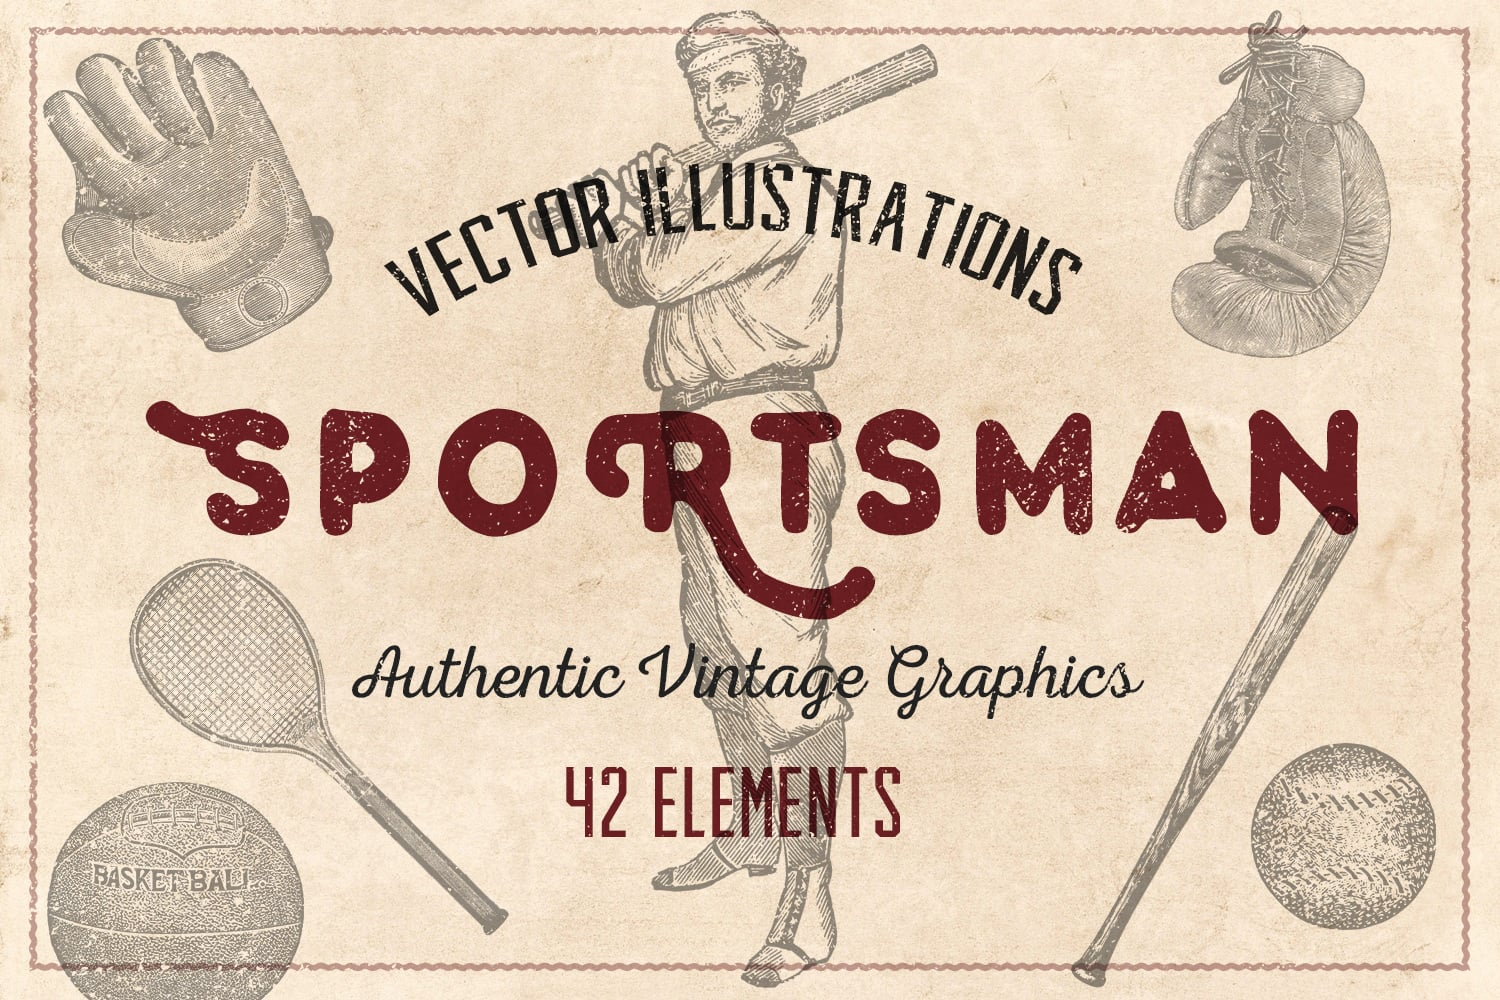 Vintage background with athlete and sports attributes.